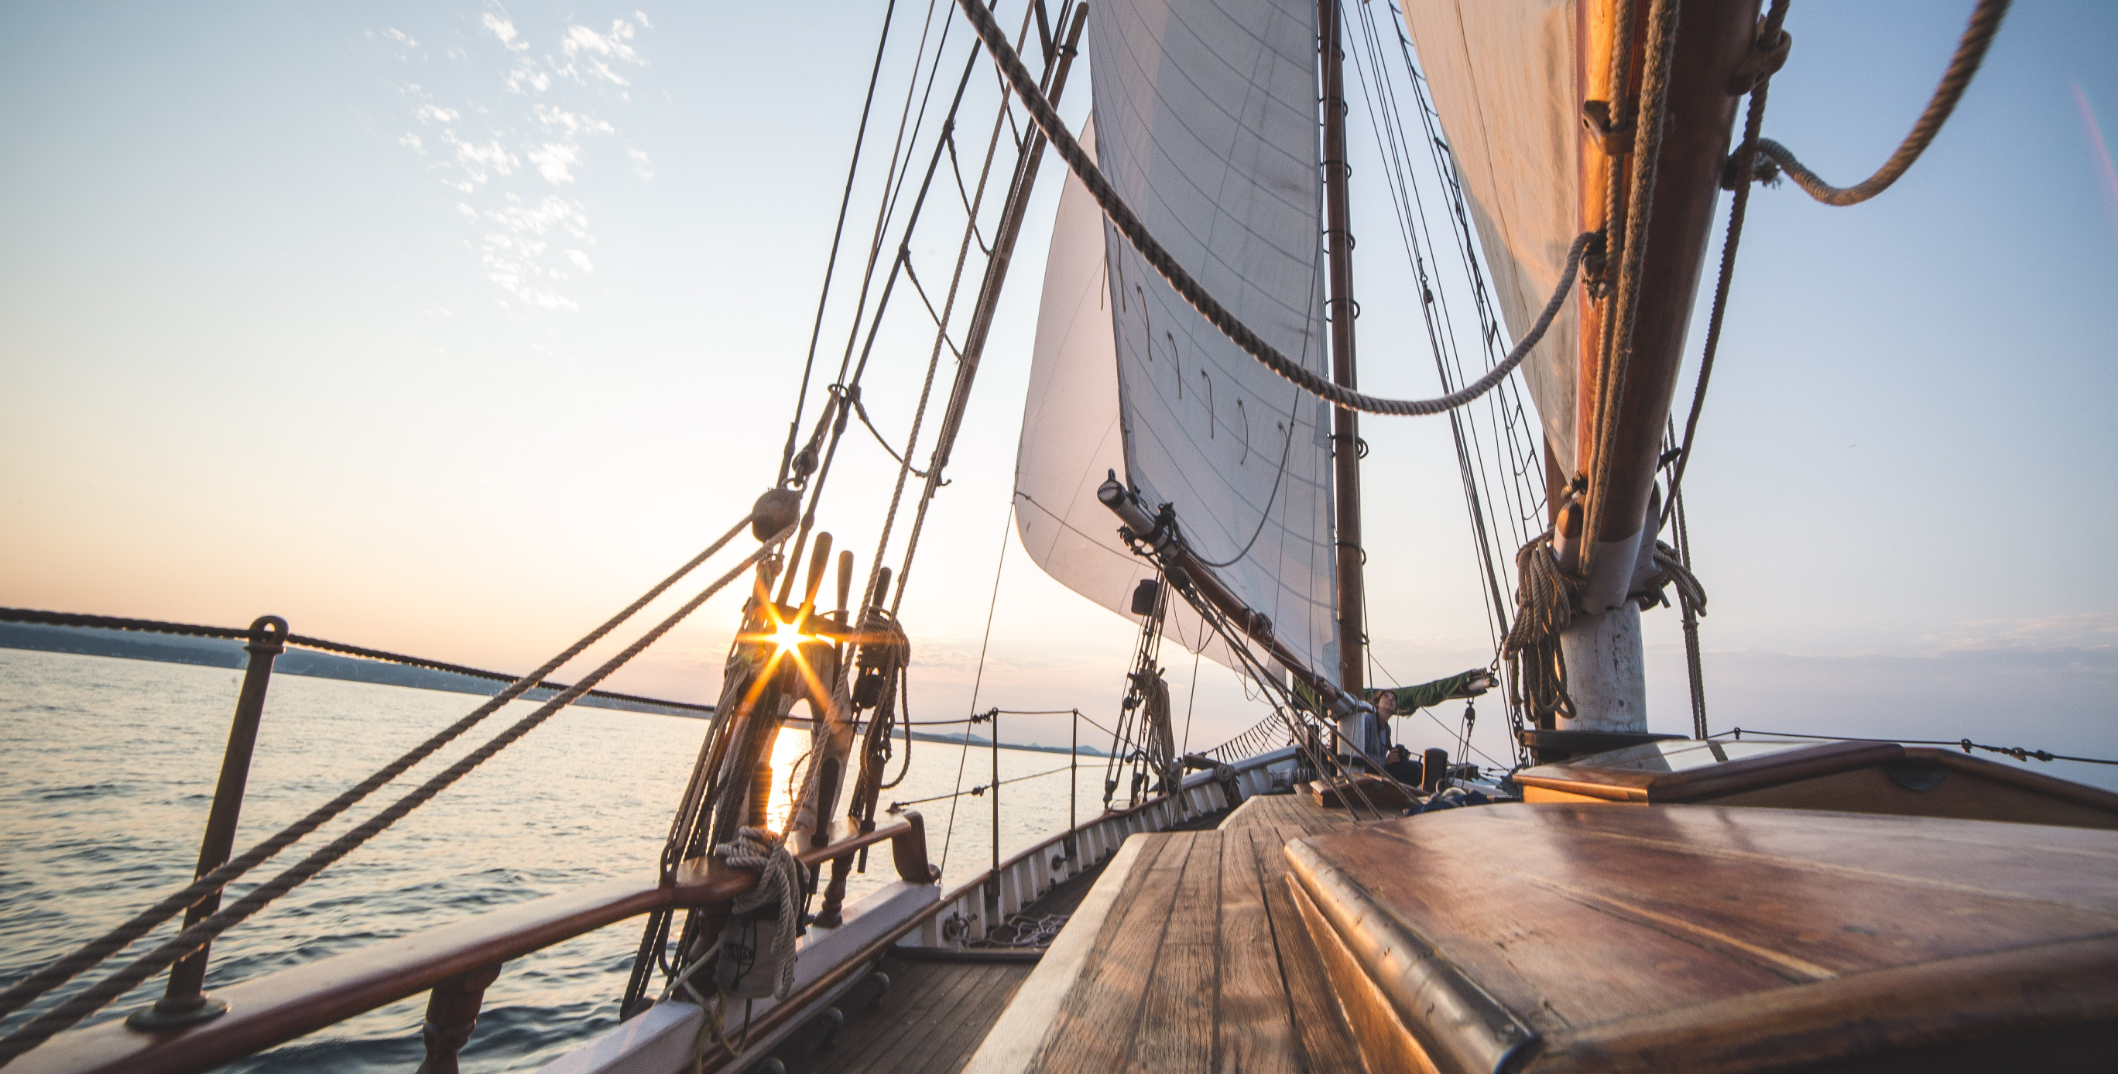 Sailboat, the oddessey journey